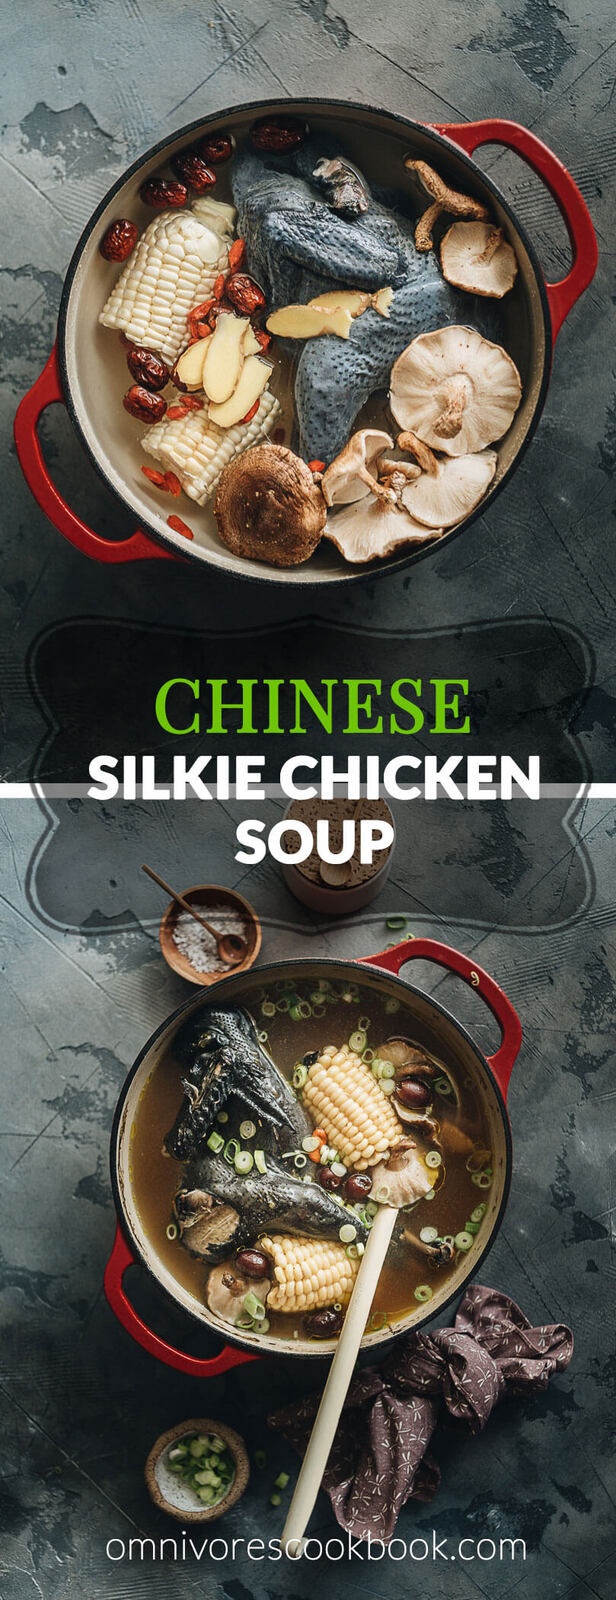 Silkie Chicken Soup - A healthy, nutrient-rich savory soup with a touch of sweetness ideal for cooler weather or when you're under the weather! #chinese #recipe #healthy